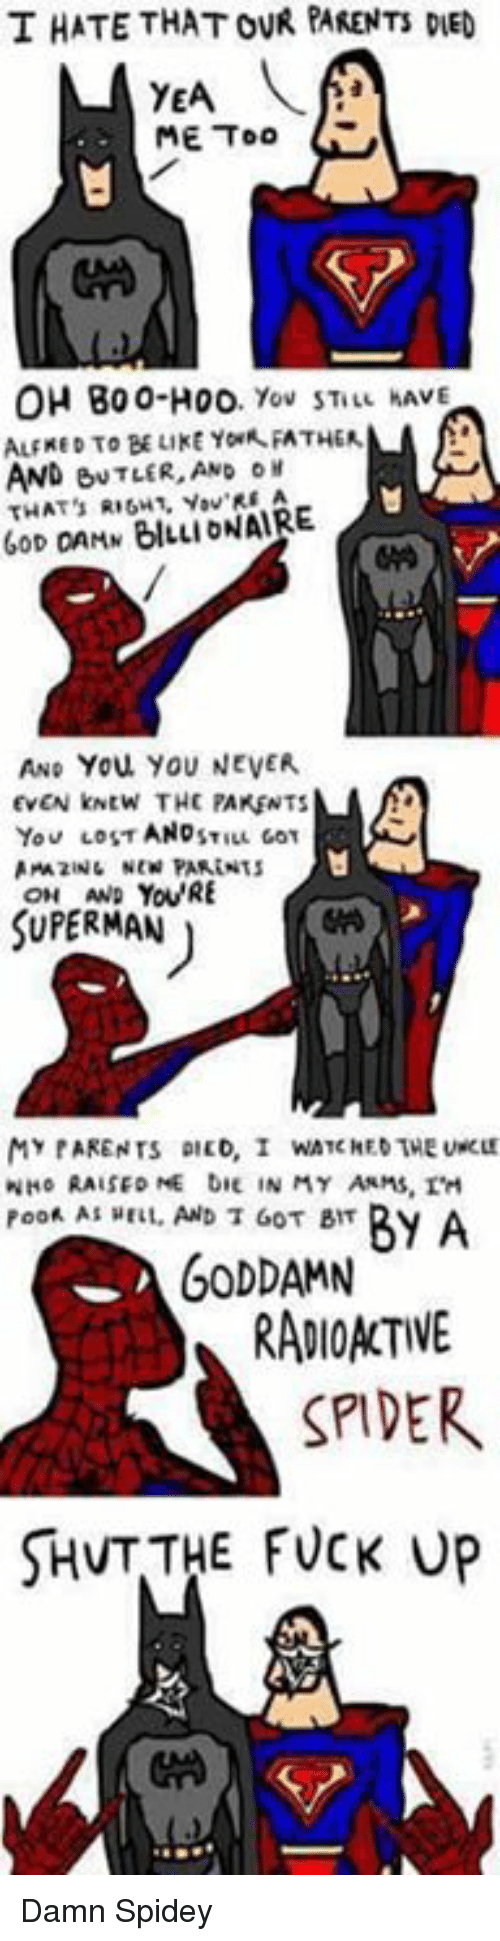 New Parents: T HATE THAT OVR PARENTs DE  YEA  ME Too  OH Boo-H00  You STILL HAVE  ALFRED TO BE LIKE YowR FATHER  AND eNTLER, AND  THAT's BILLIONAIRE  GOD DAMN AND You, YOU NEVER.  EVEN kNtw THE PAKENTS  AND  You LOST  STILL GOT  AmzuNL NEW PARENTS  YOURE  SUPERMAN  MY PARENTS DILD, I WATCHED THE  WHo RAISED NE DIE IN MY ANMs, TH  By A  Poof AS HELL, AND T GOT BIT  GODDAMN  RADIOACTIVE  SPIDER  SHvT THE FUCK UP Damn Spidey